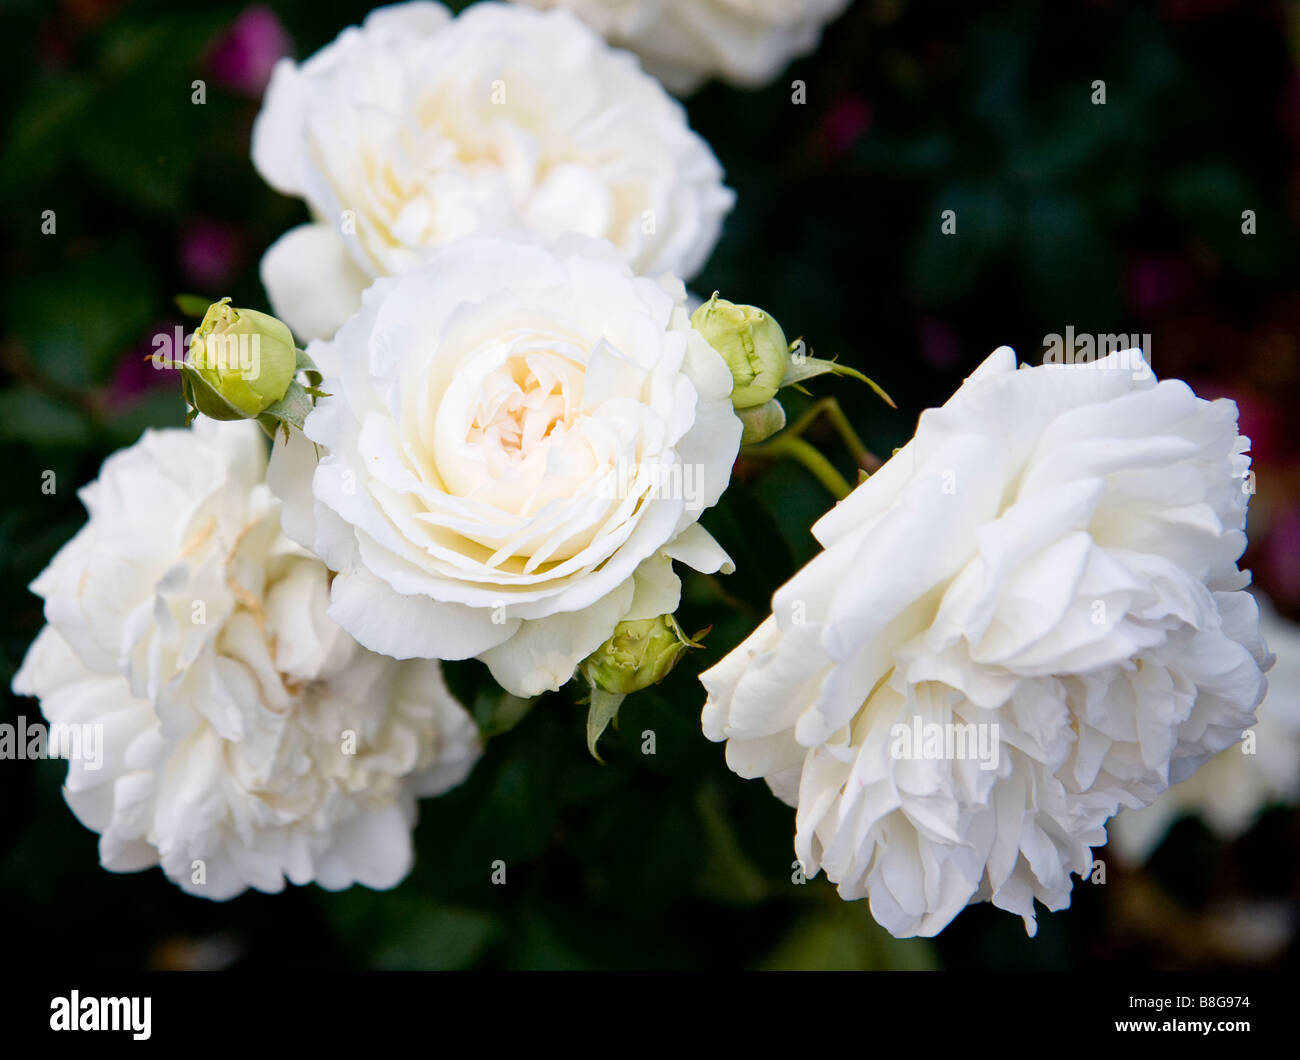 White Roses from Portland Rose Garden - Stock Image